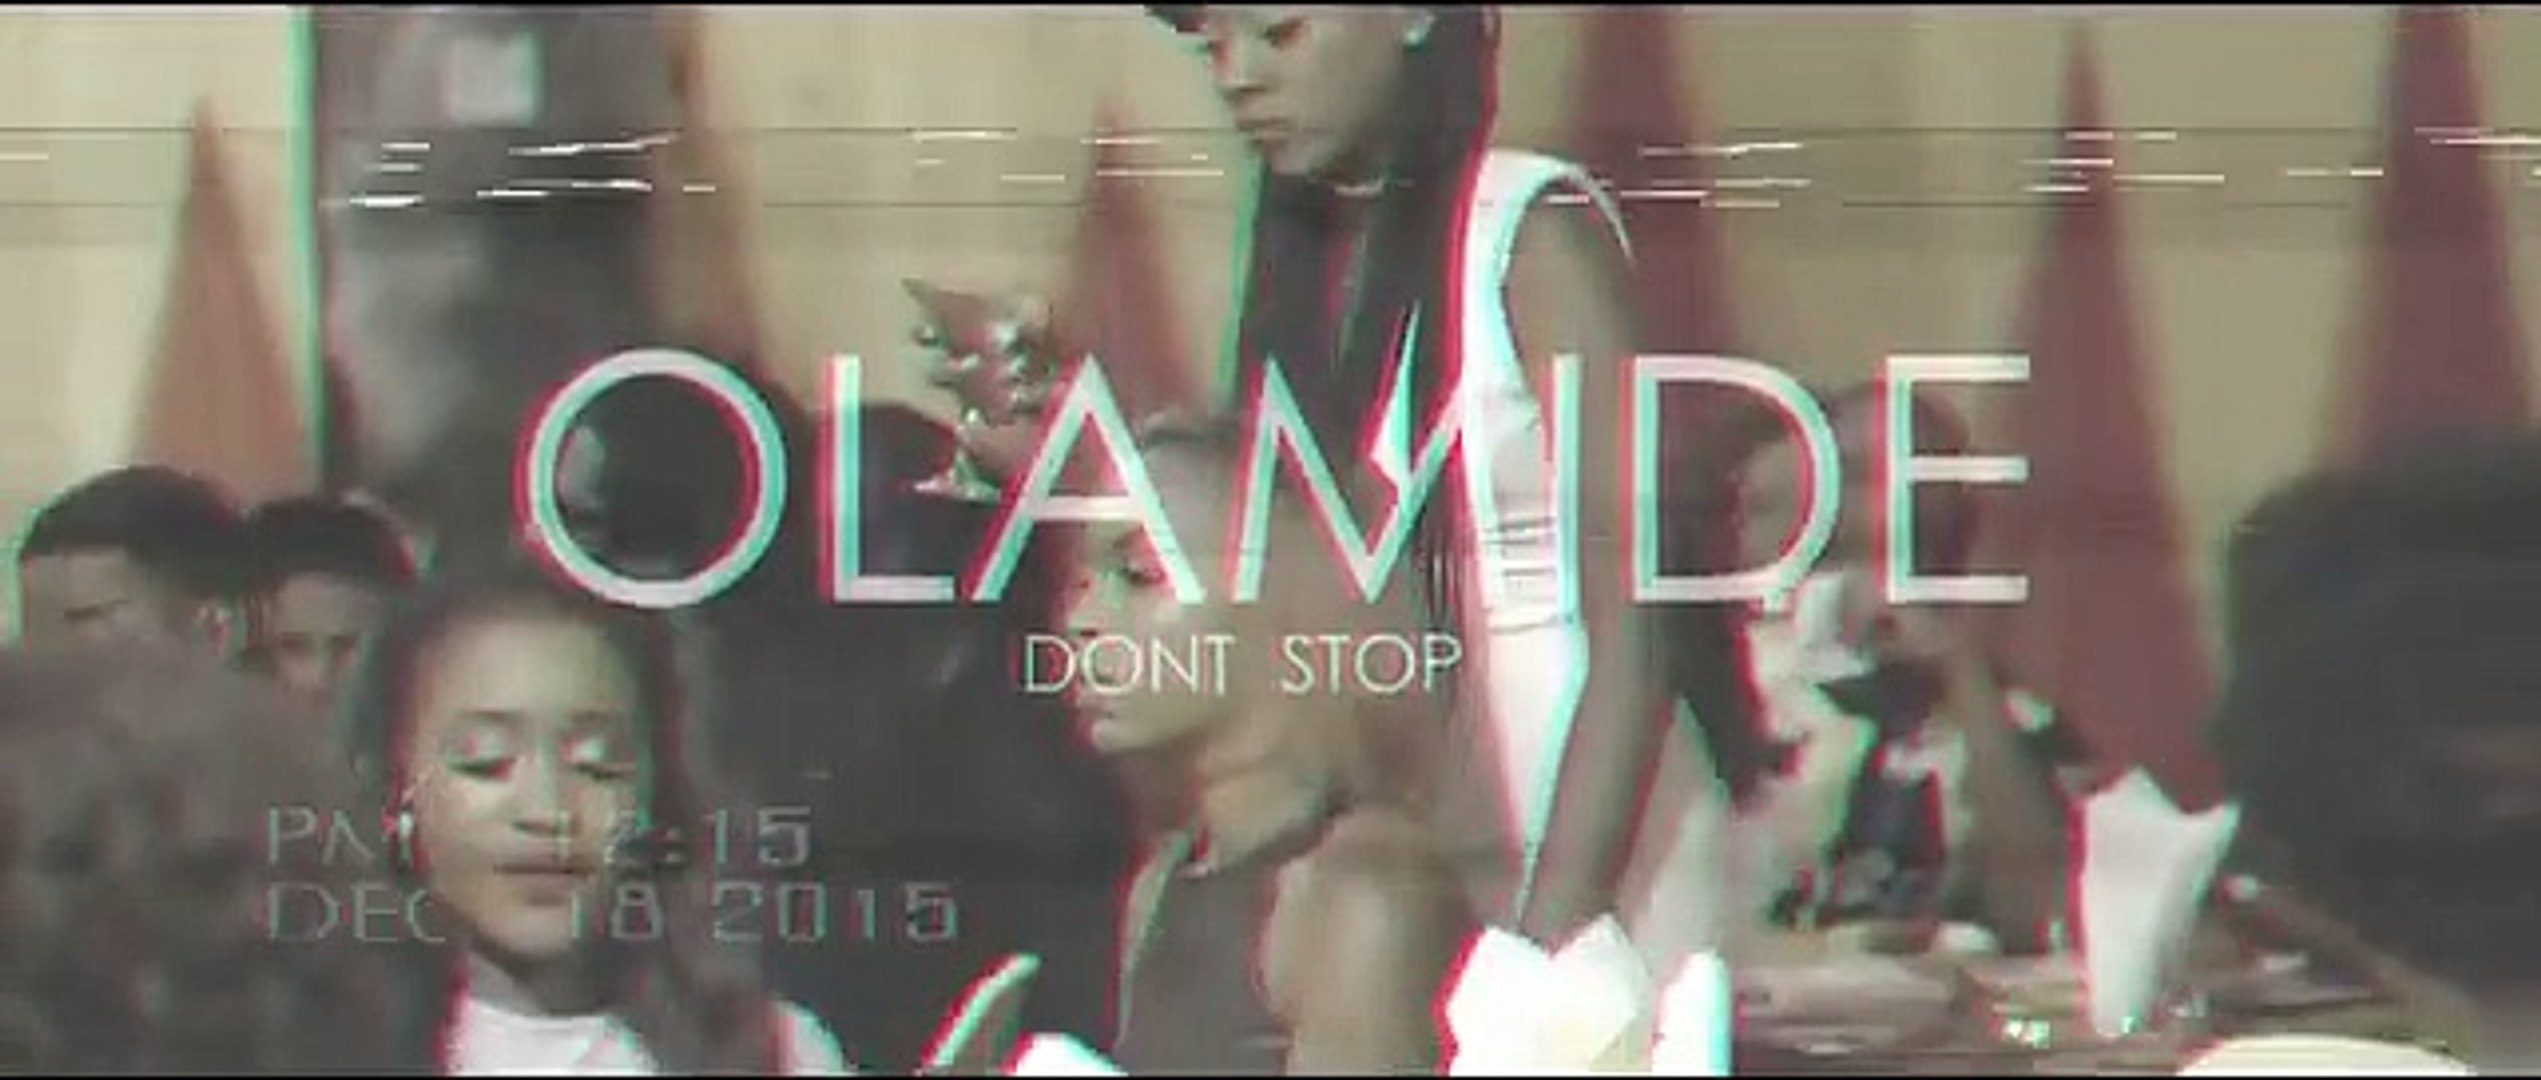 Olamide - Dont Stop